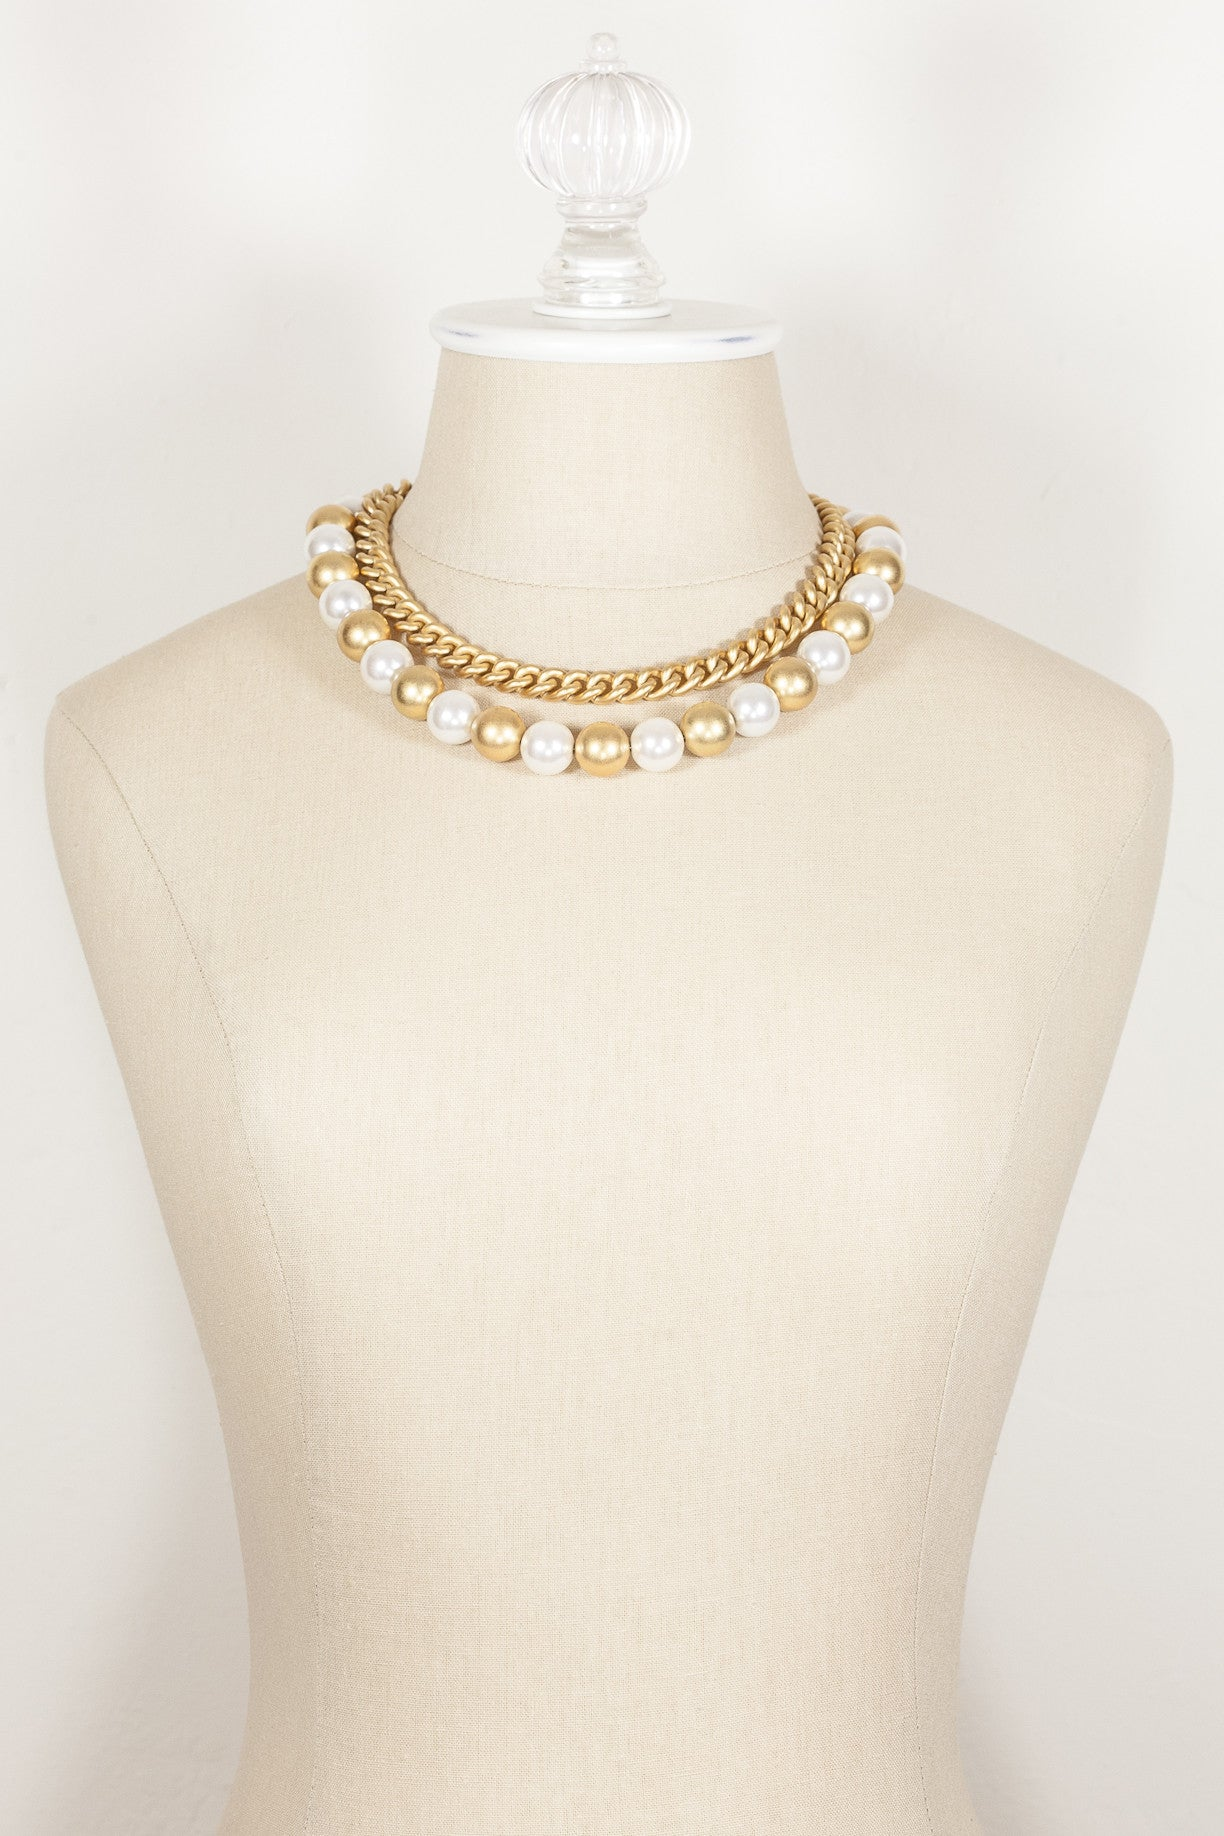 80's__Anne Klein__Chunky Pearl Chain Necklace